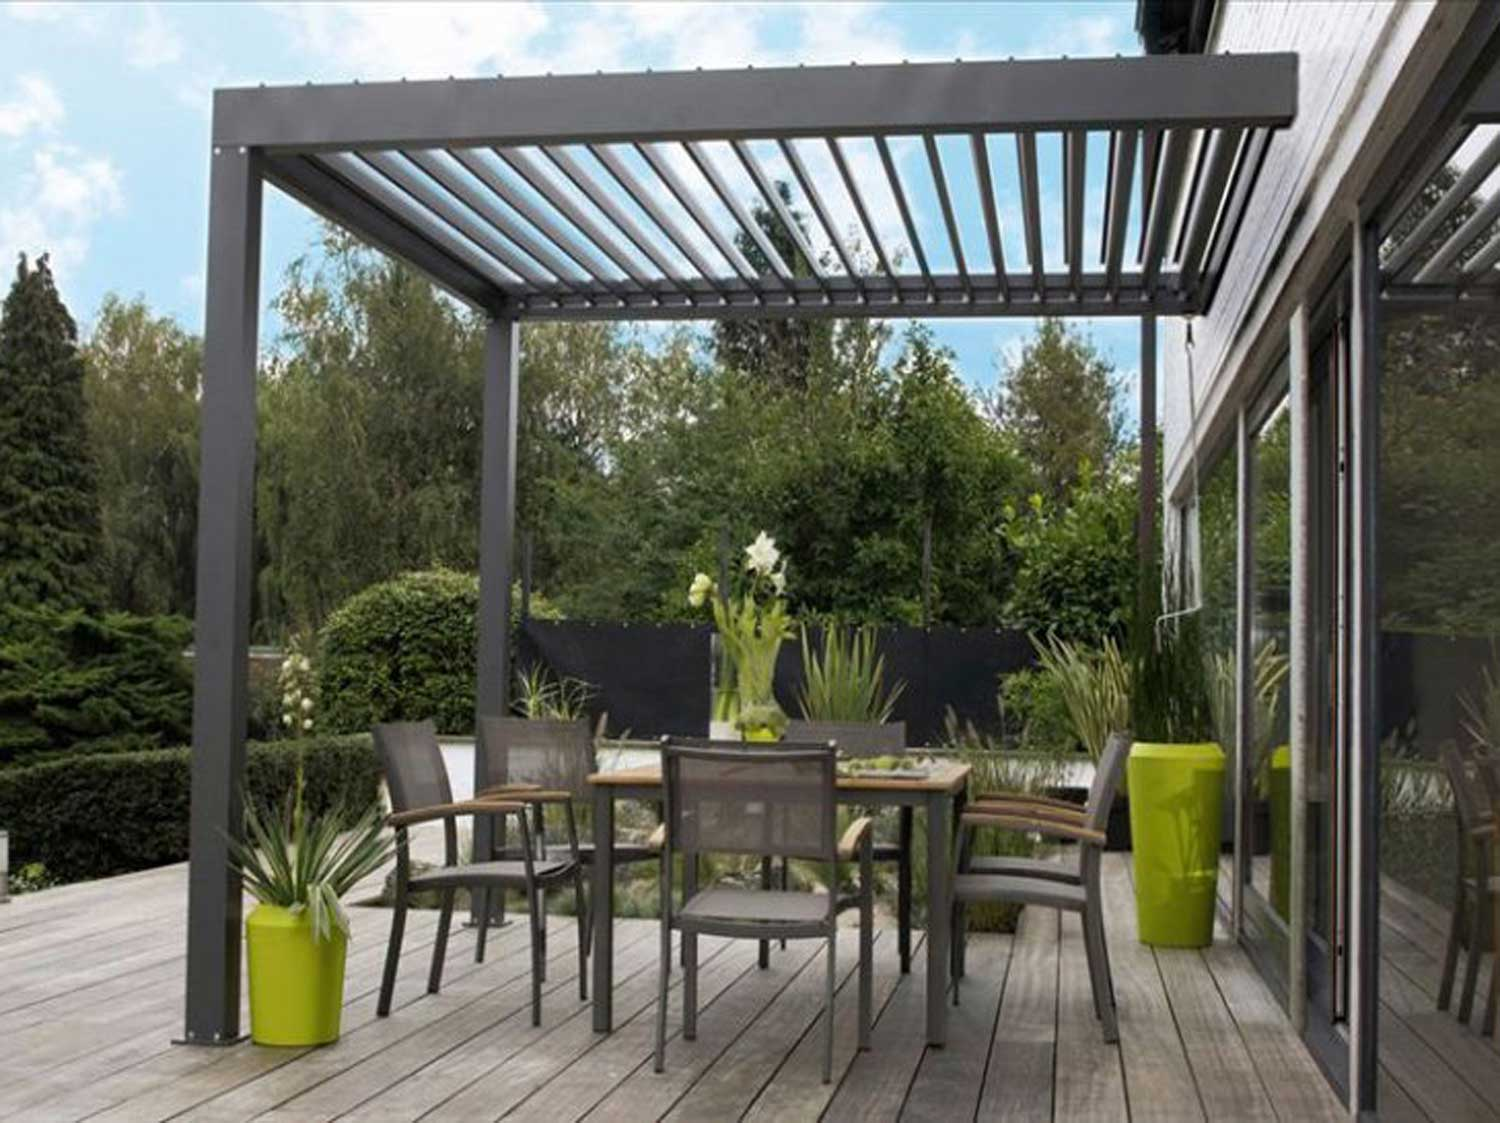 Pergola bioclimatique leroy merlin for Pergola a lames orientables leroy merlin